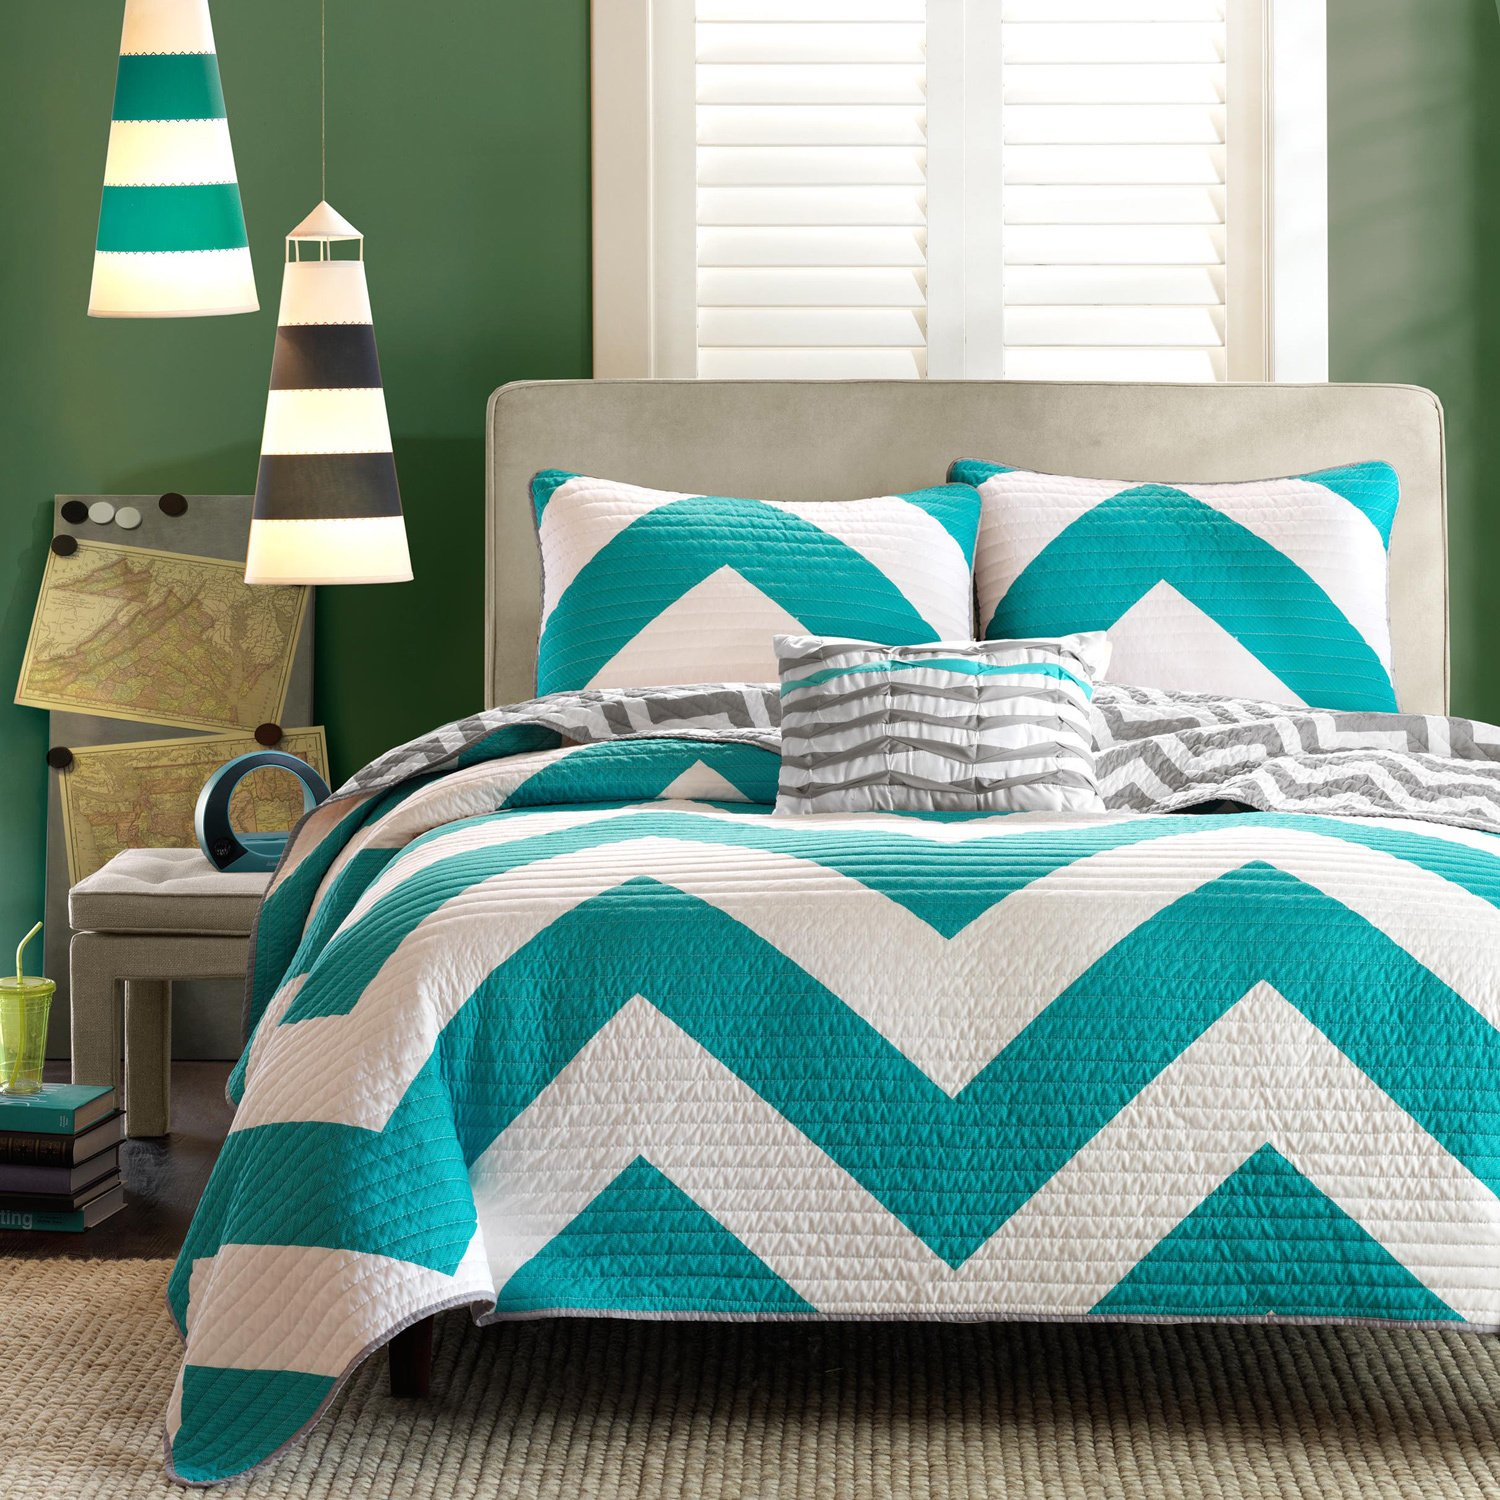 4 Pc Zig Zag Reversible Chevron Bedspread Quilt with Matching Shams and Cushion pillow - Aqua, Black, Pink Teal/Grey